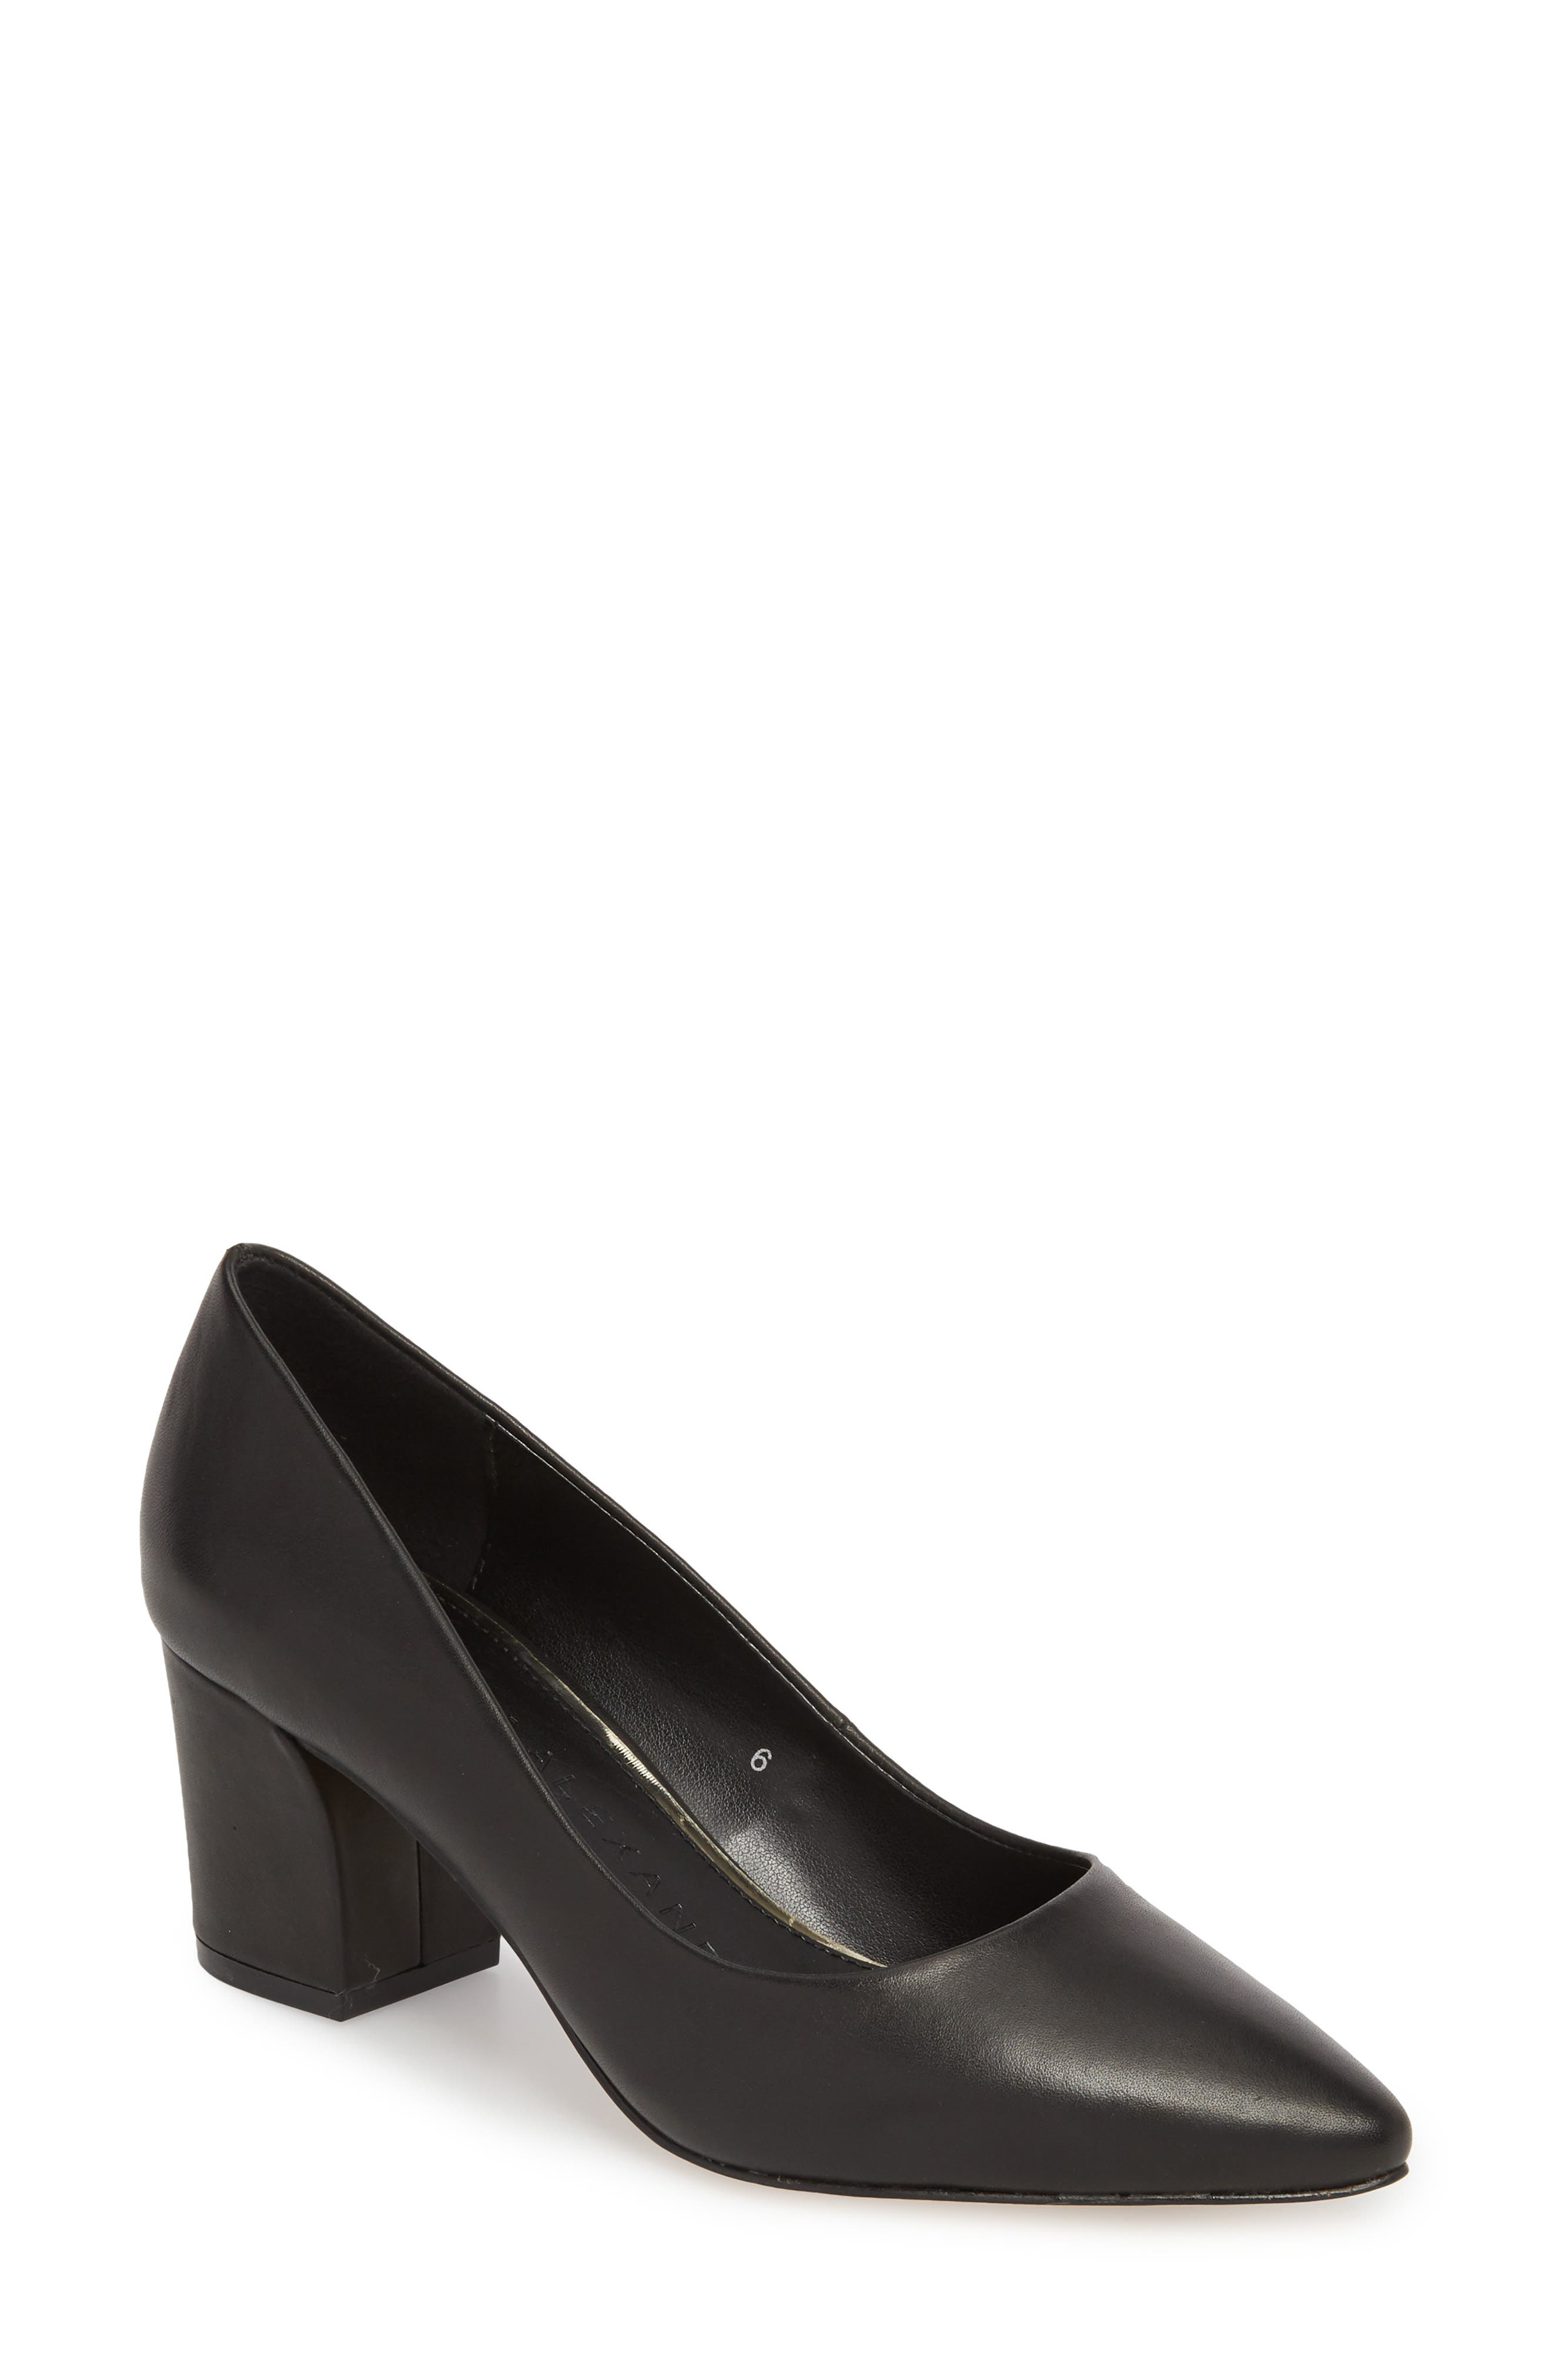 Haven Block Heel Pump,                             Main thumbnail 1, color,                             Black Leather